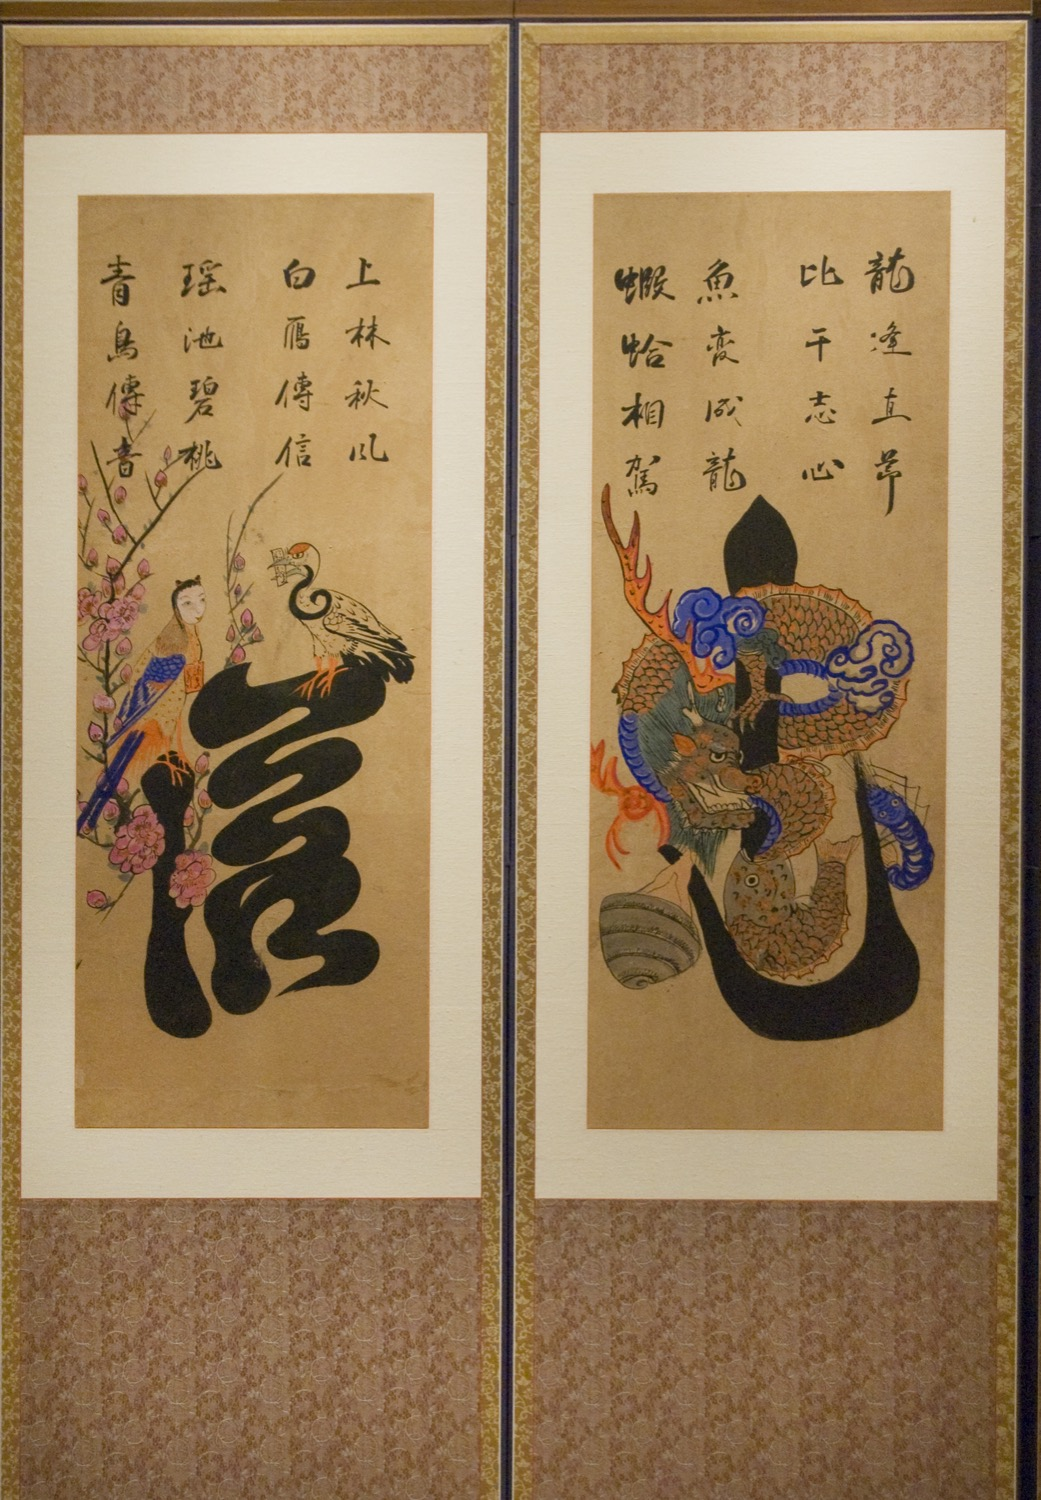 한국의 미술, 경매, 문자도, Munjado, New York Auction House, Houston Auction, Dallas Auction, San Antonio Auction, Korean auction,  Asian Art Auction,